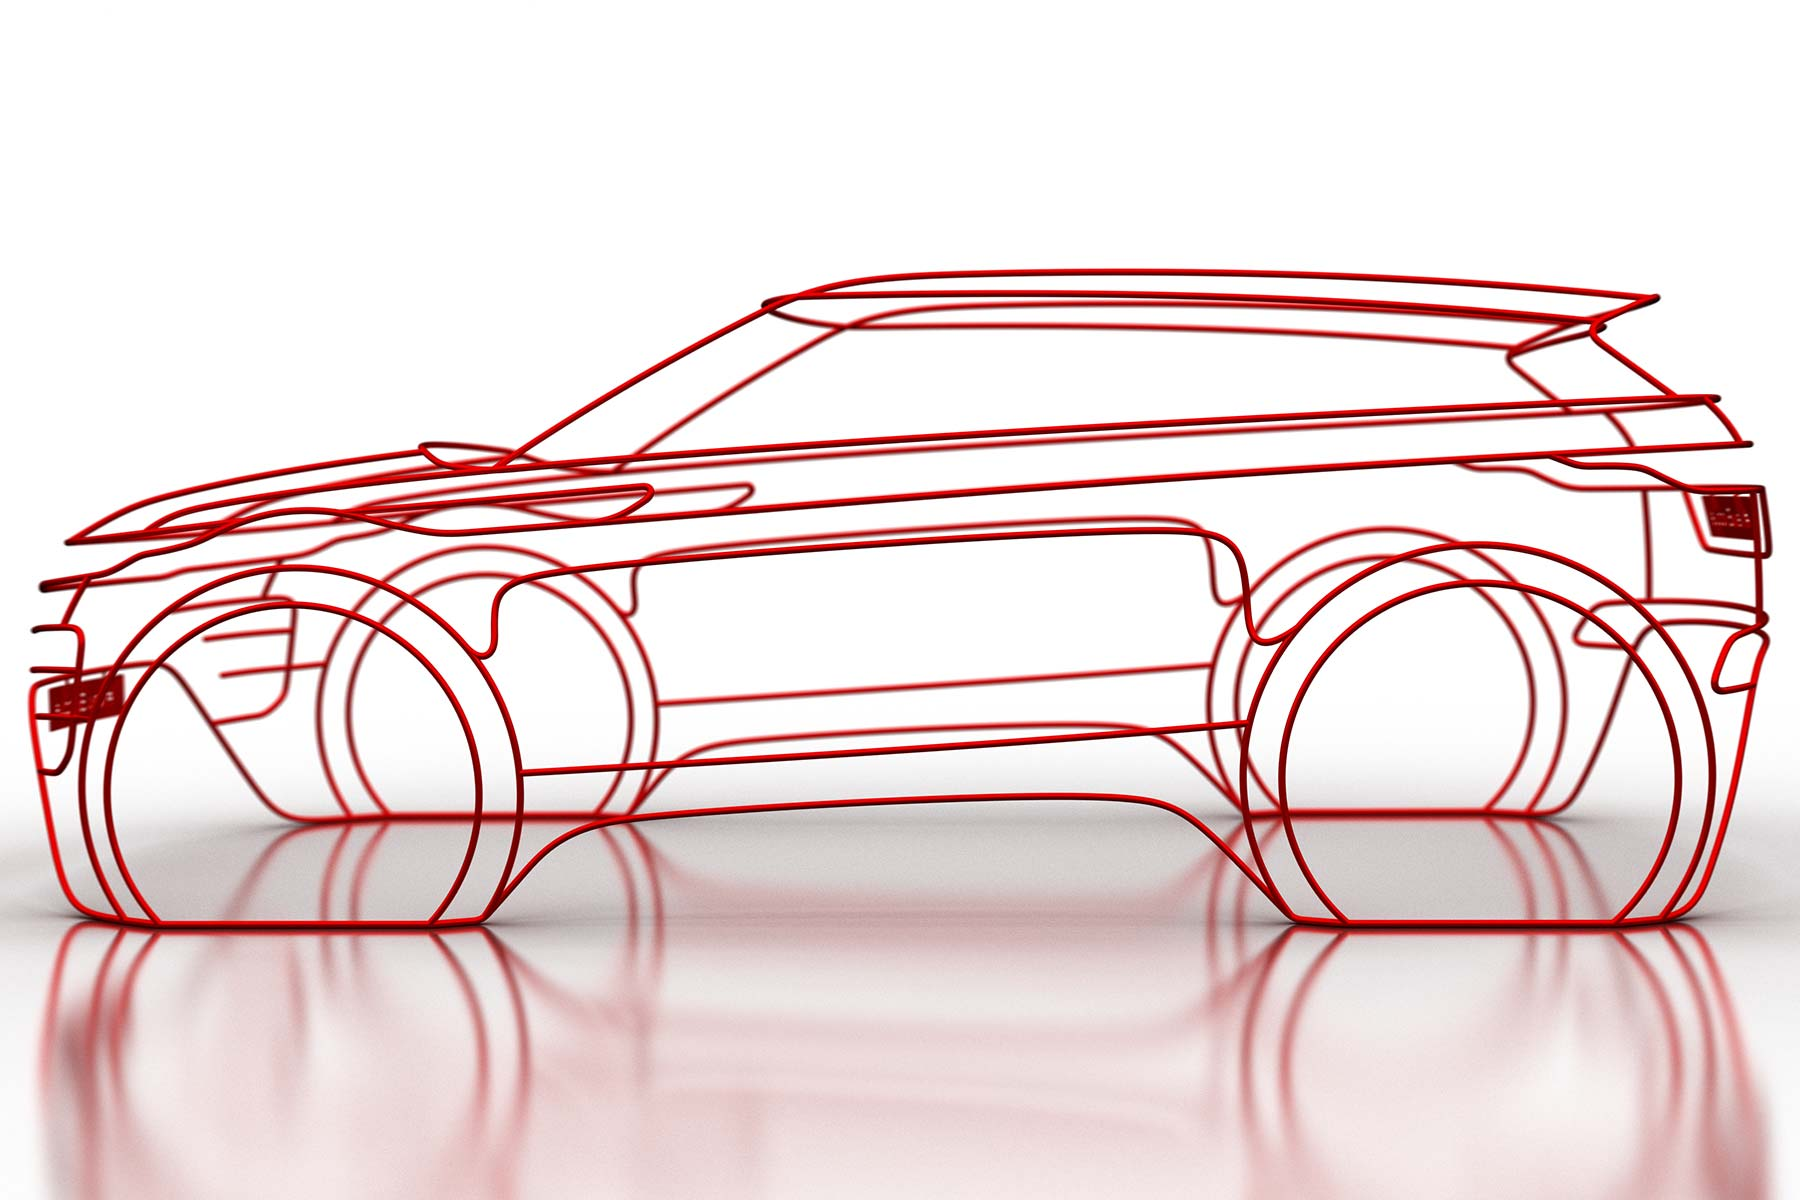 The new 2019 Range Rover Evoque has been teased in wireframe form